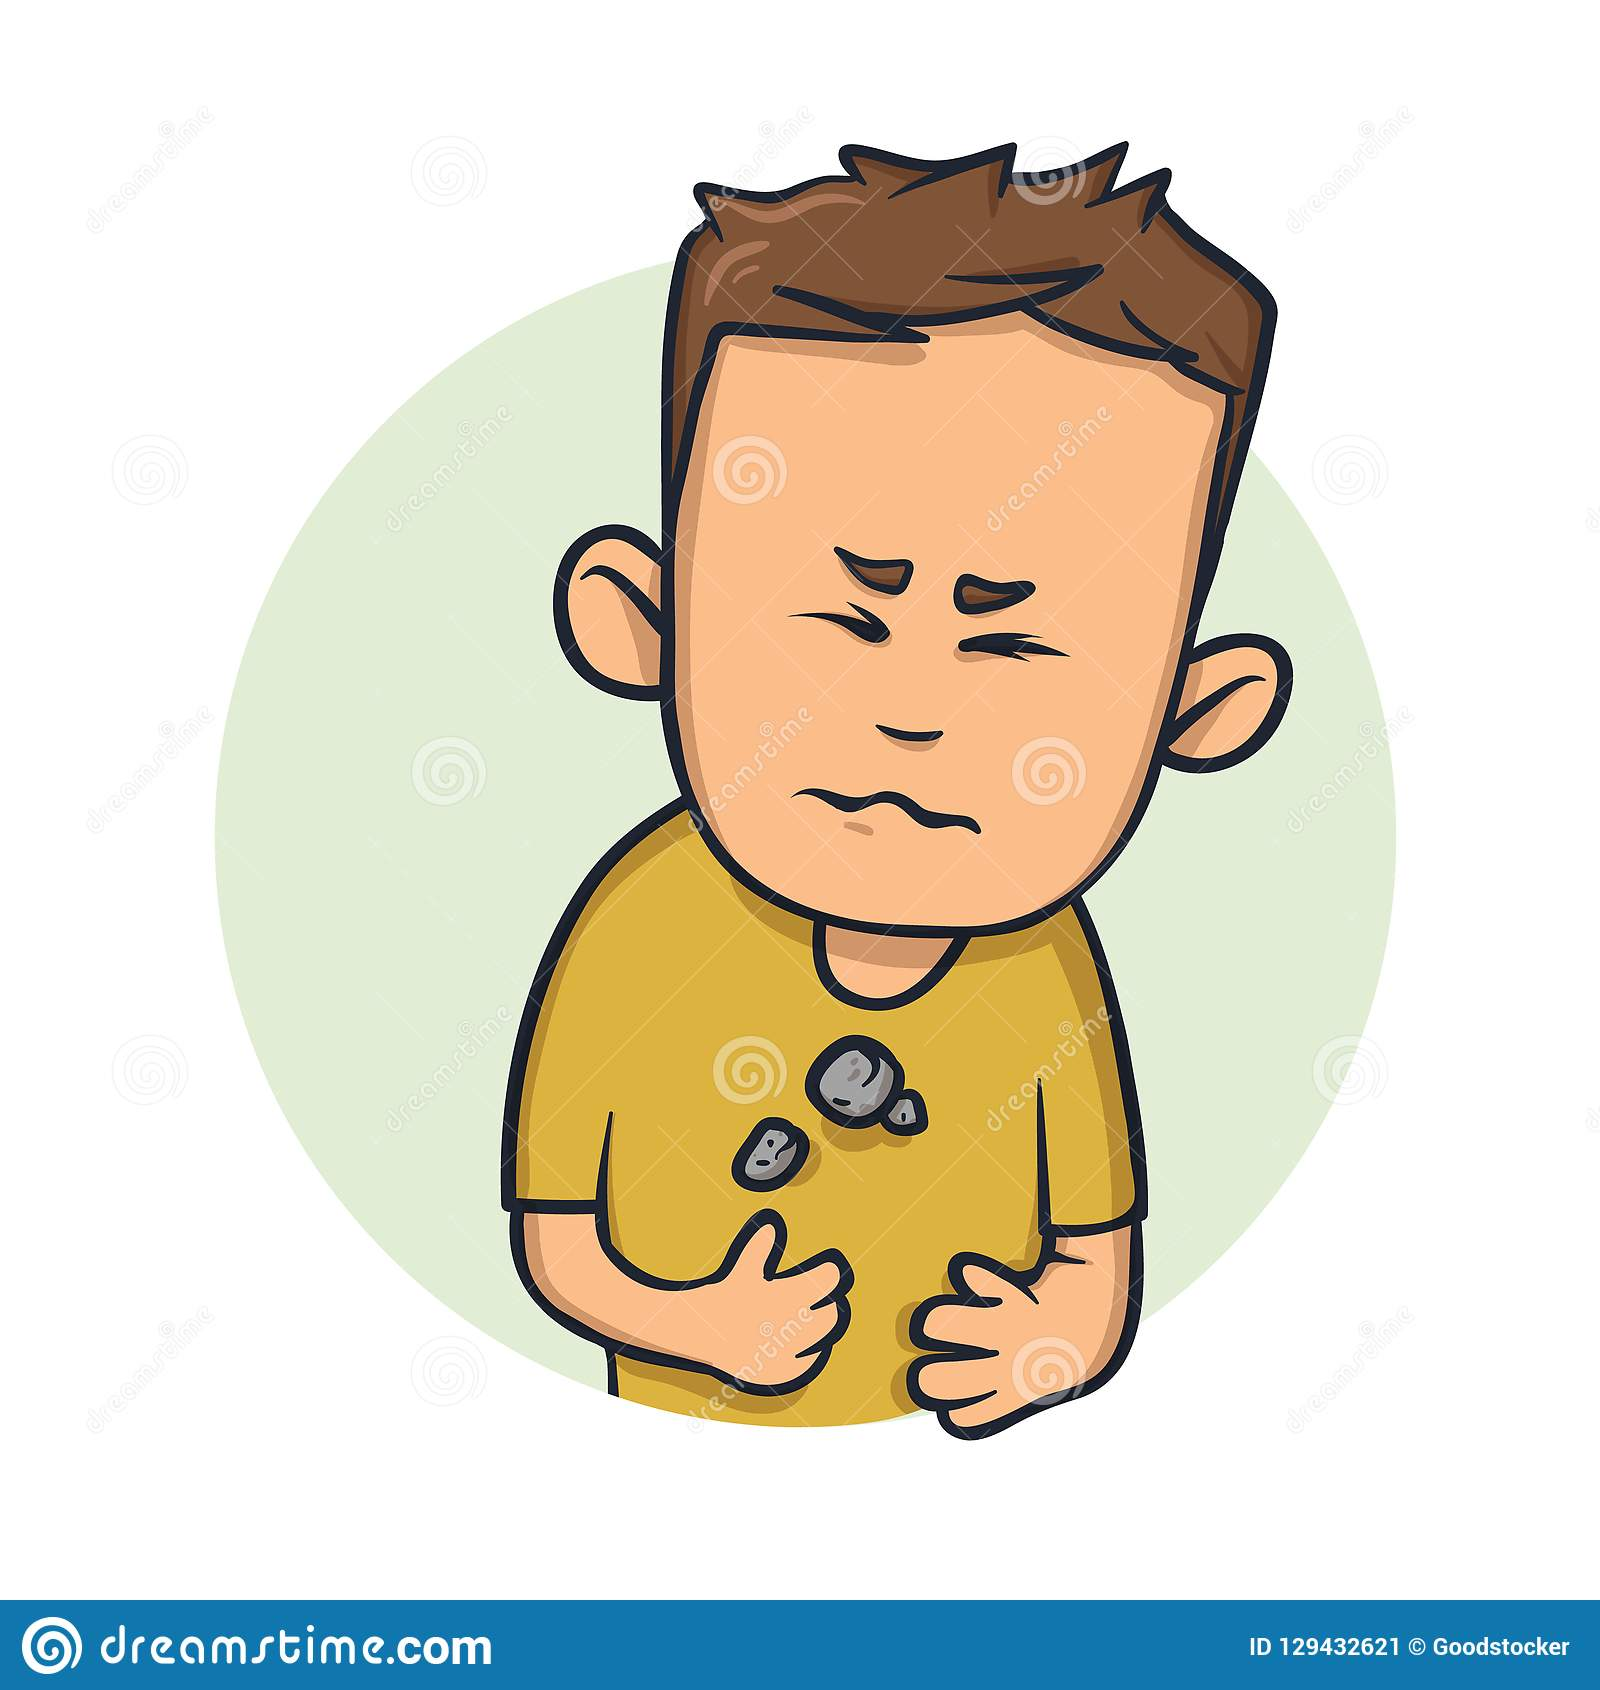 Young man feeling heavy in his chest. Difficulty to breathe. Cartoon design icon. Flat vector illustration. Isolated on